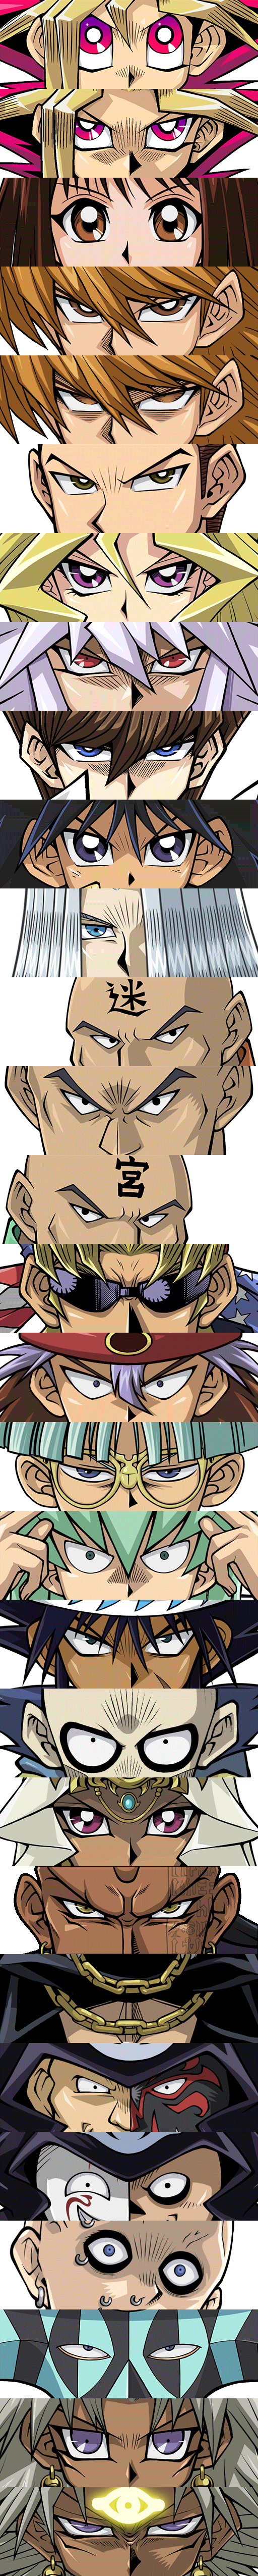 Yugioh! Duel Monster - All Characters [Duel Links] by